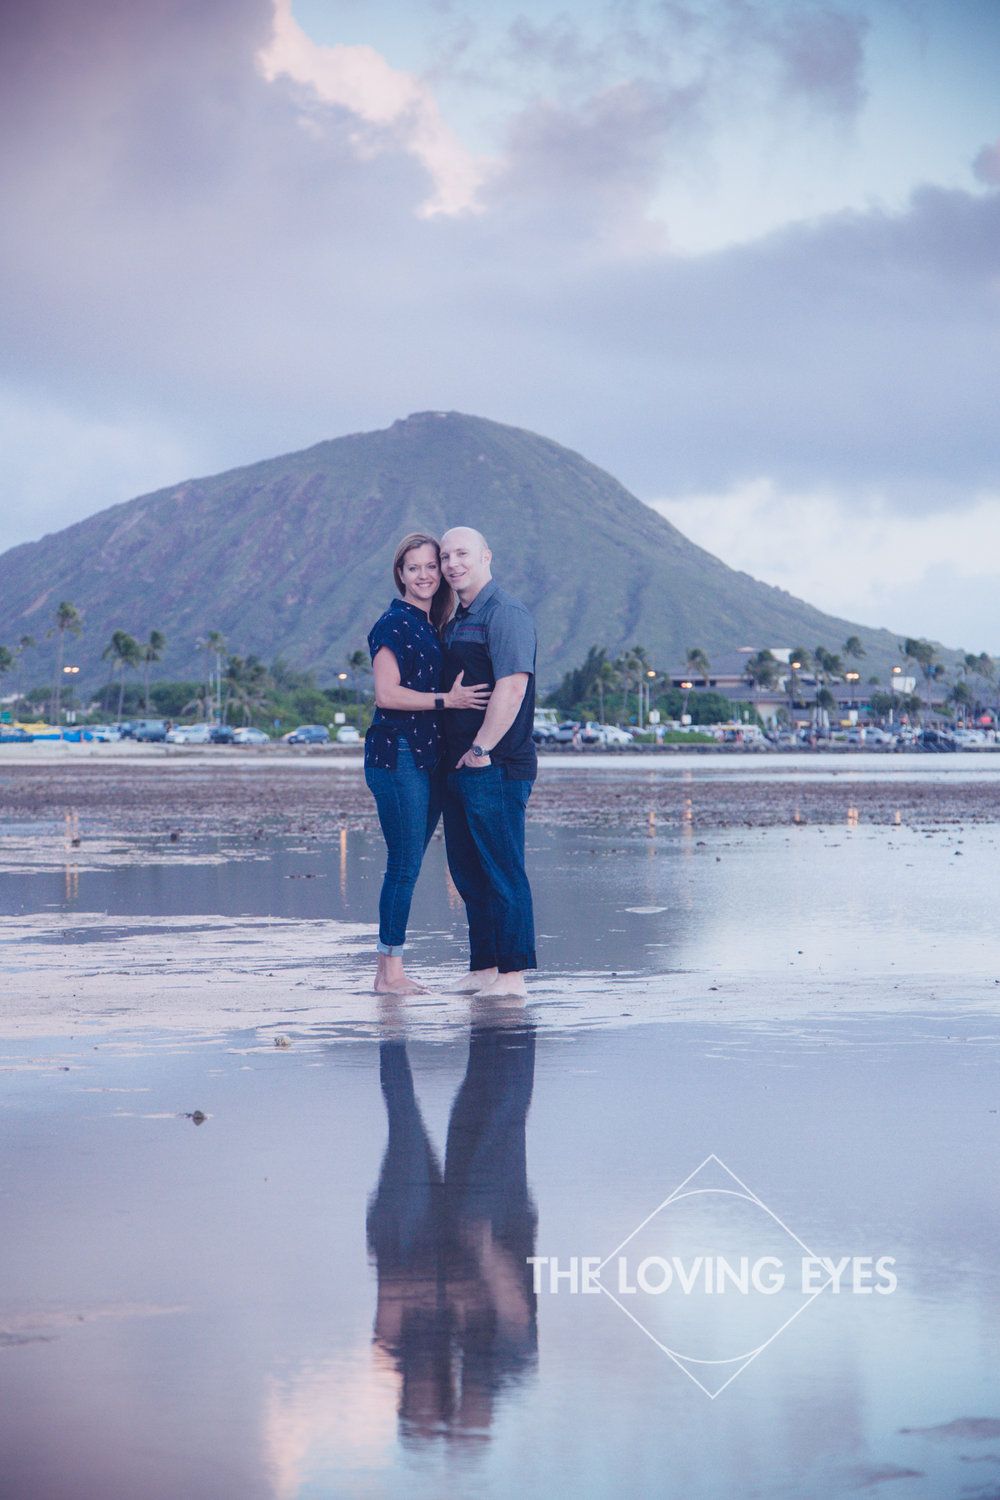 Couple portrait during vacation on the beach in Kuliouou Hawaii